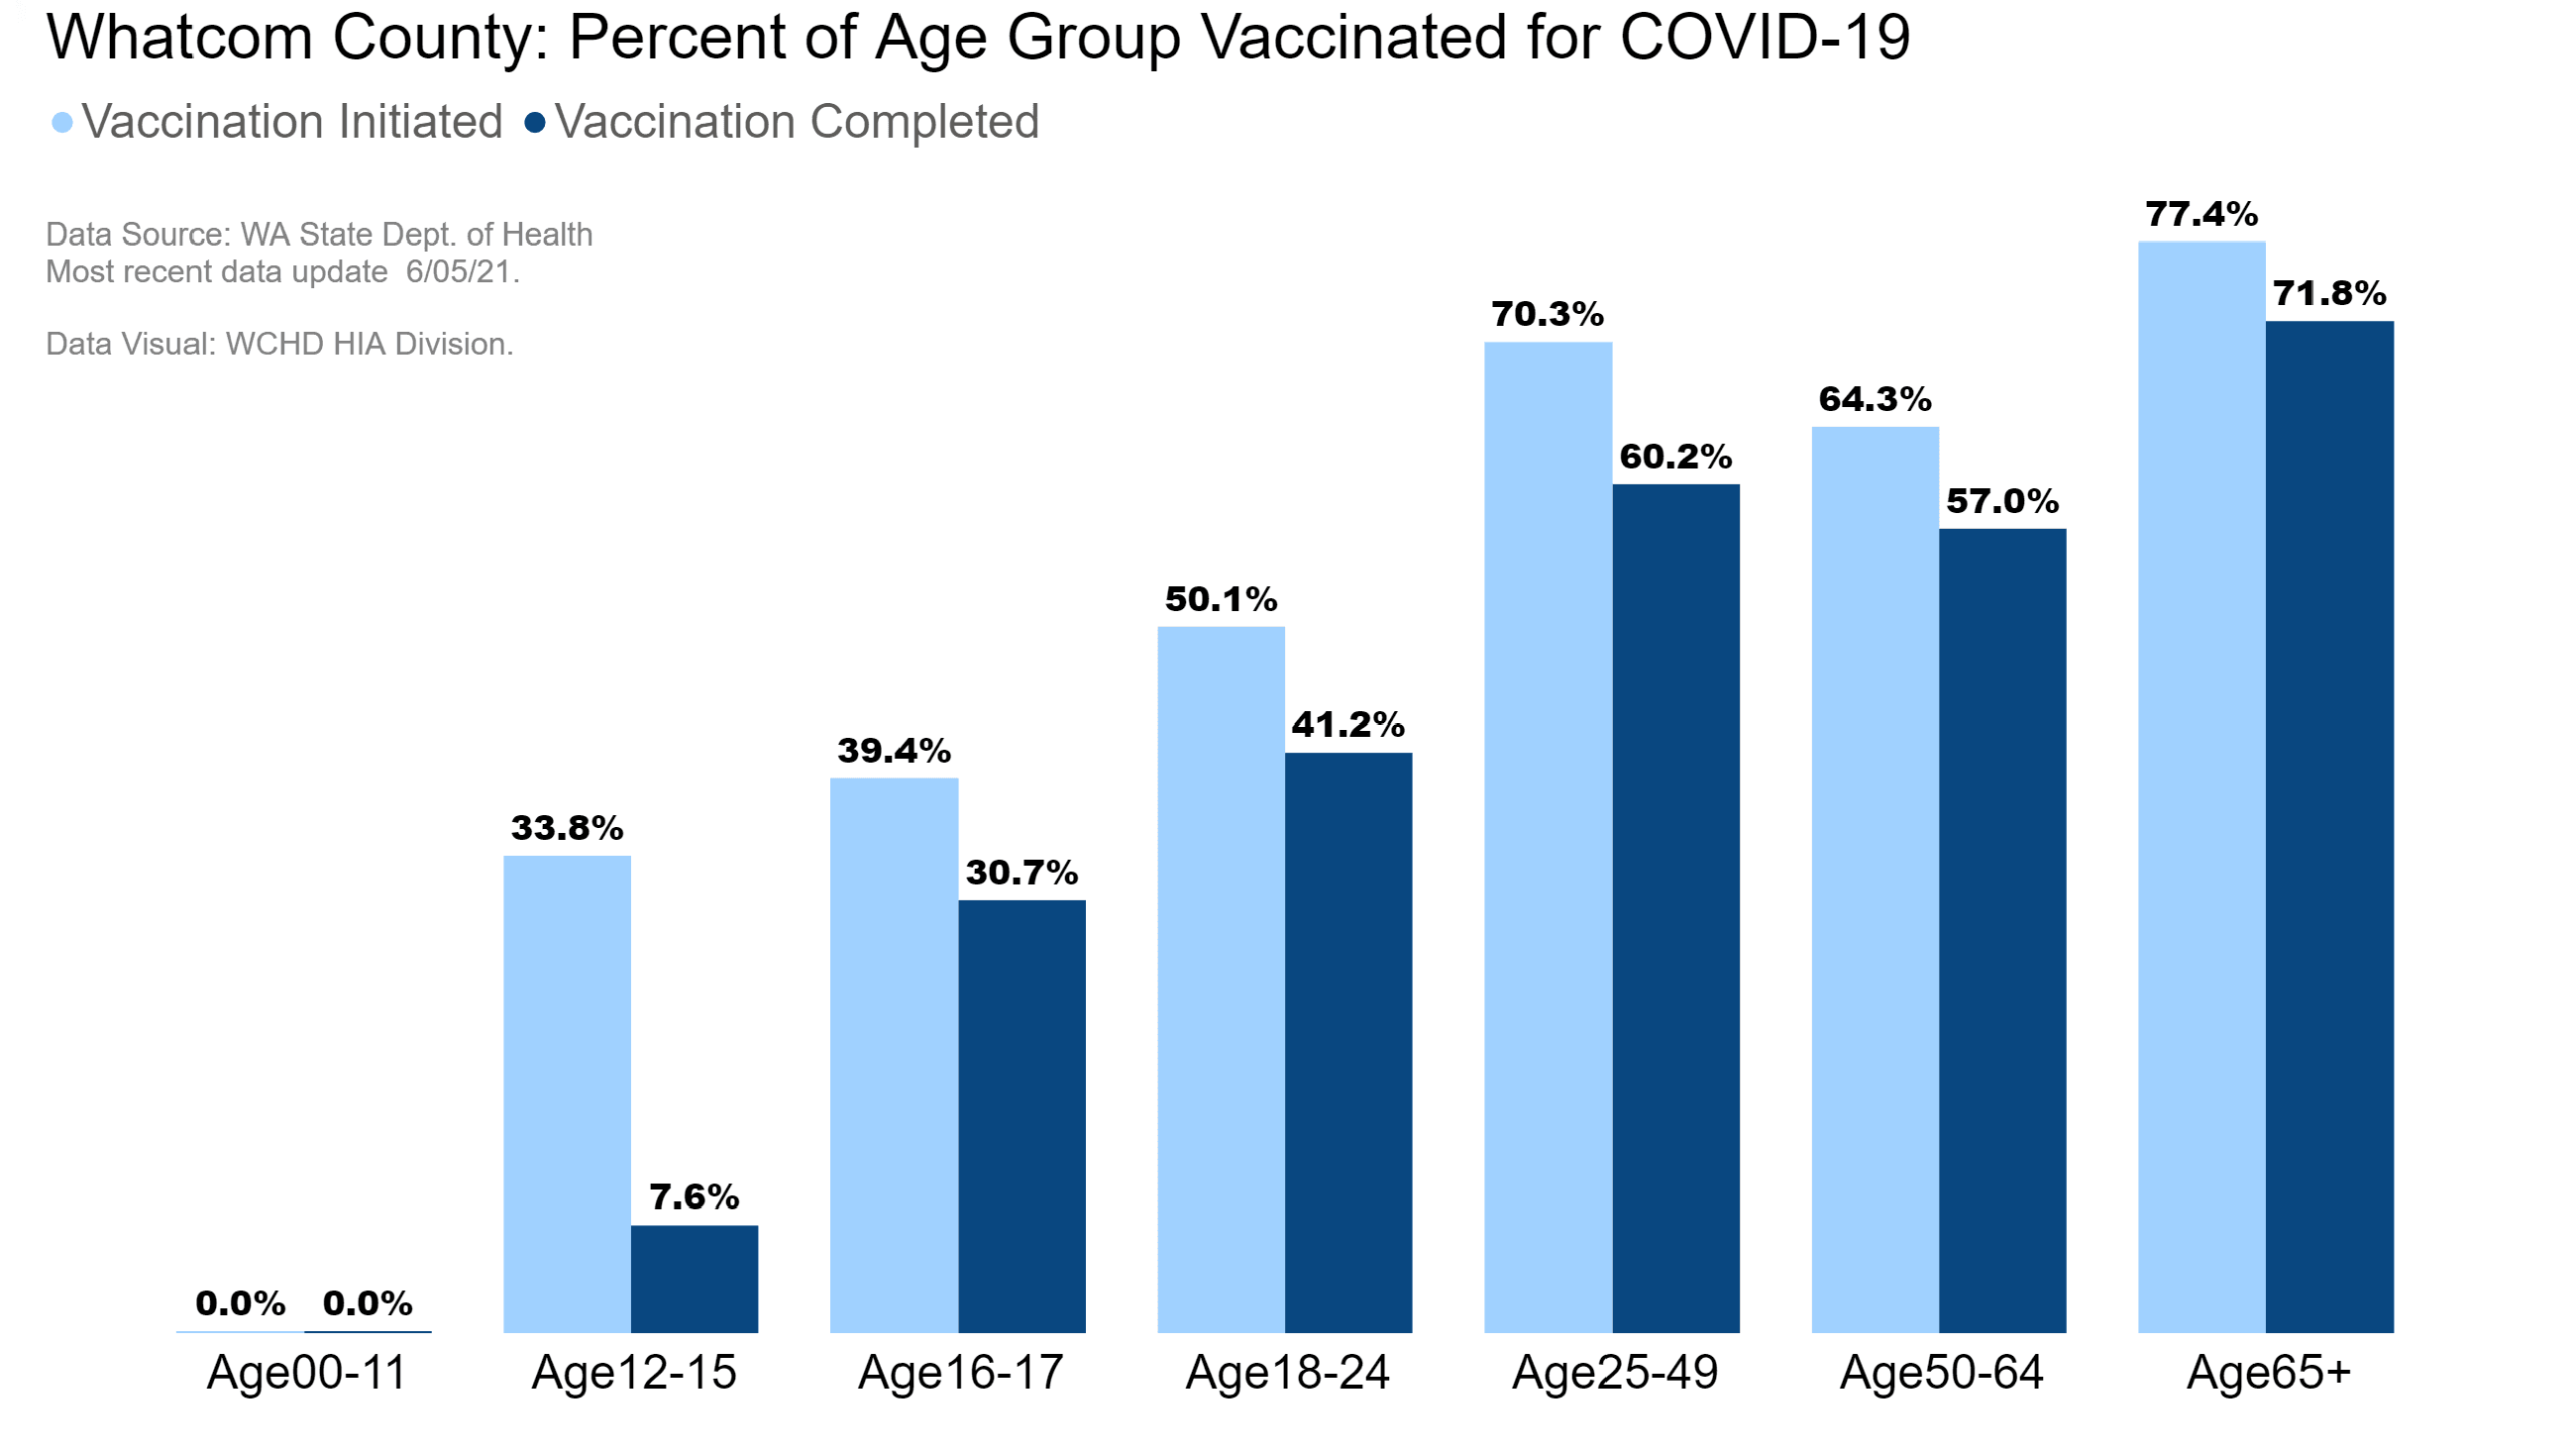 Whatcom County: percentage of age groups vaccinated for COVID-19